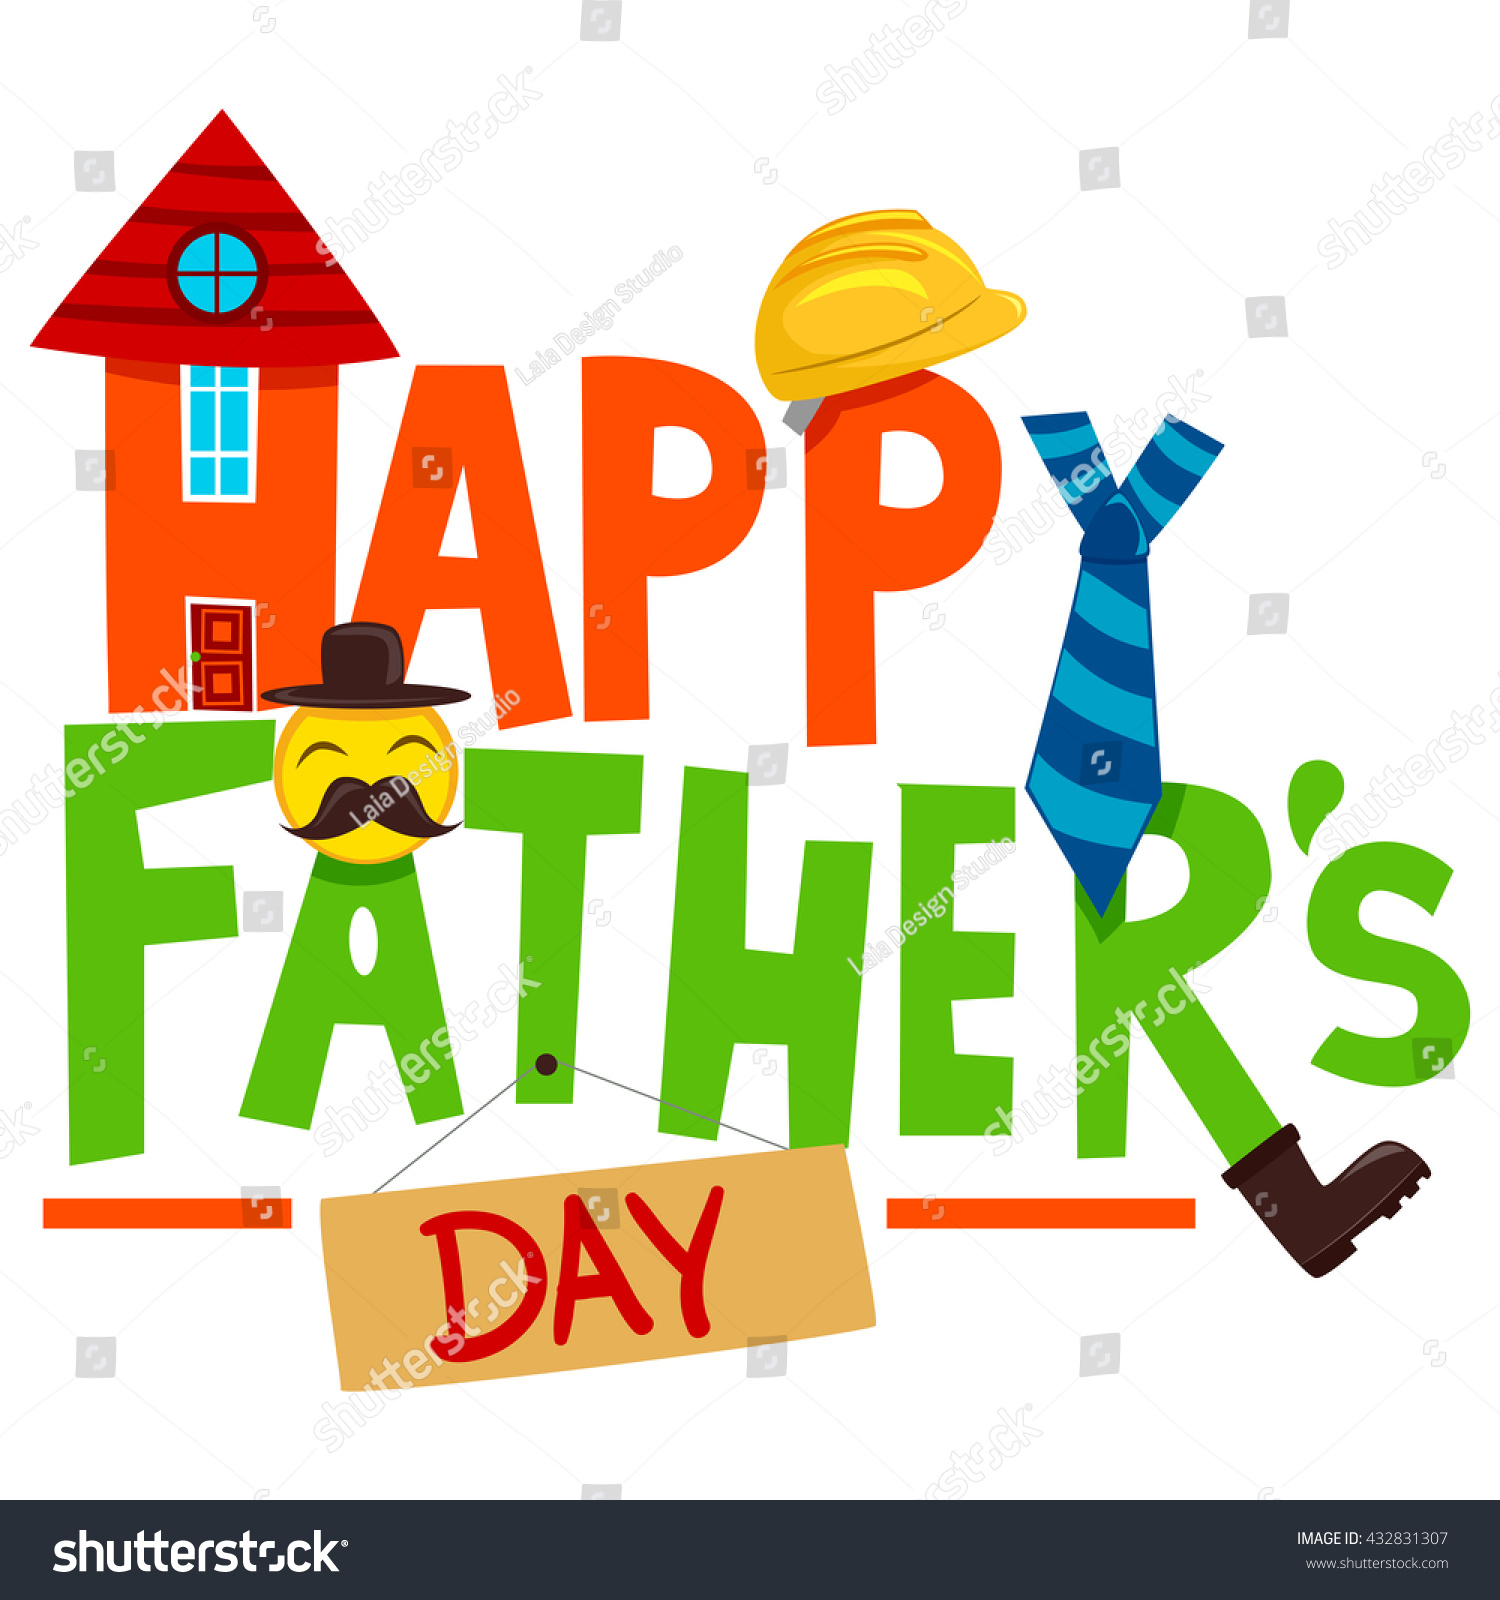 Vector illustration happy fathers day greeting stock vector vector illustration of happy fathers day greeting elements m4hsunfo